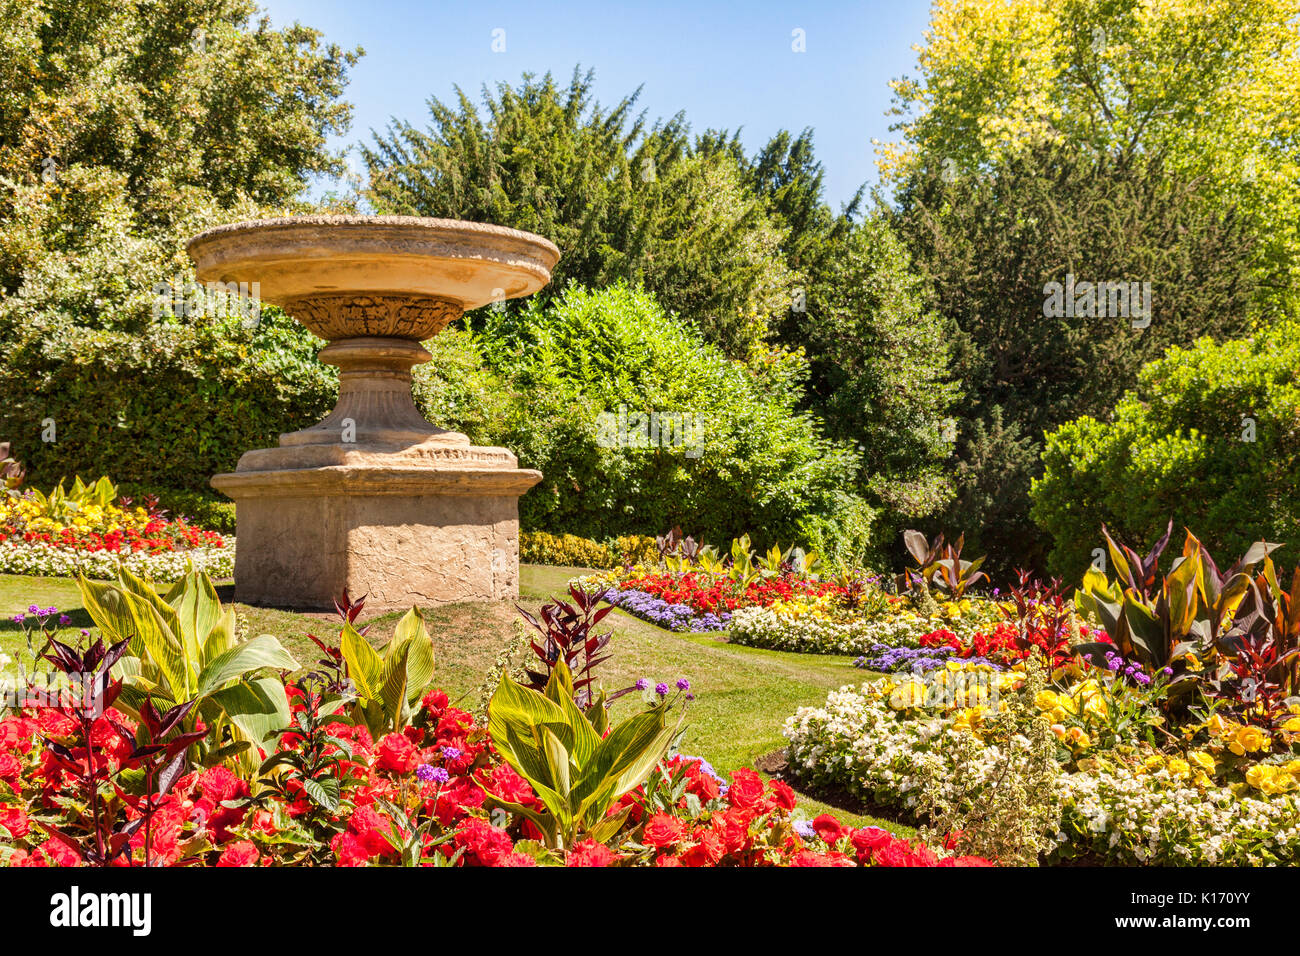 Flower beds filled with annuals in public gardens in Bath, Somerset, Englanmd, UK - Stock Image